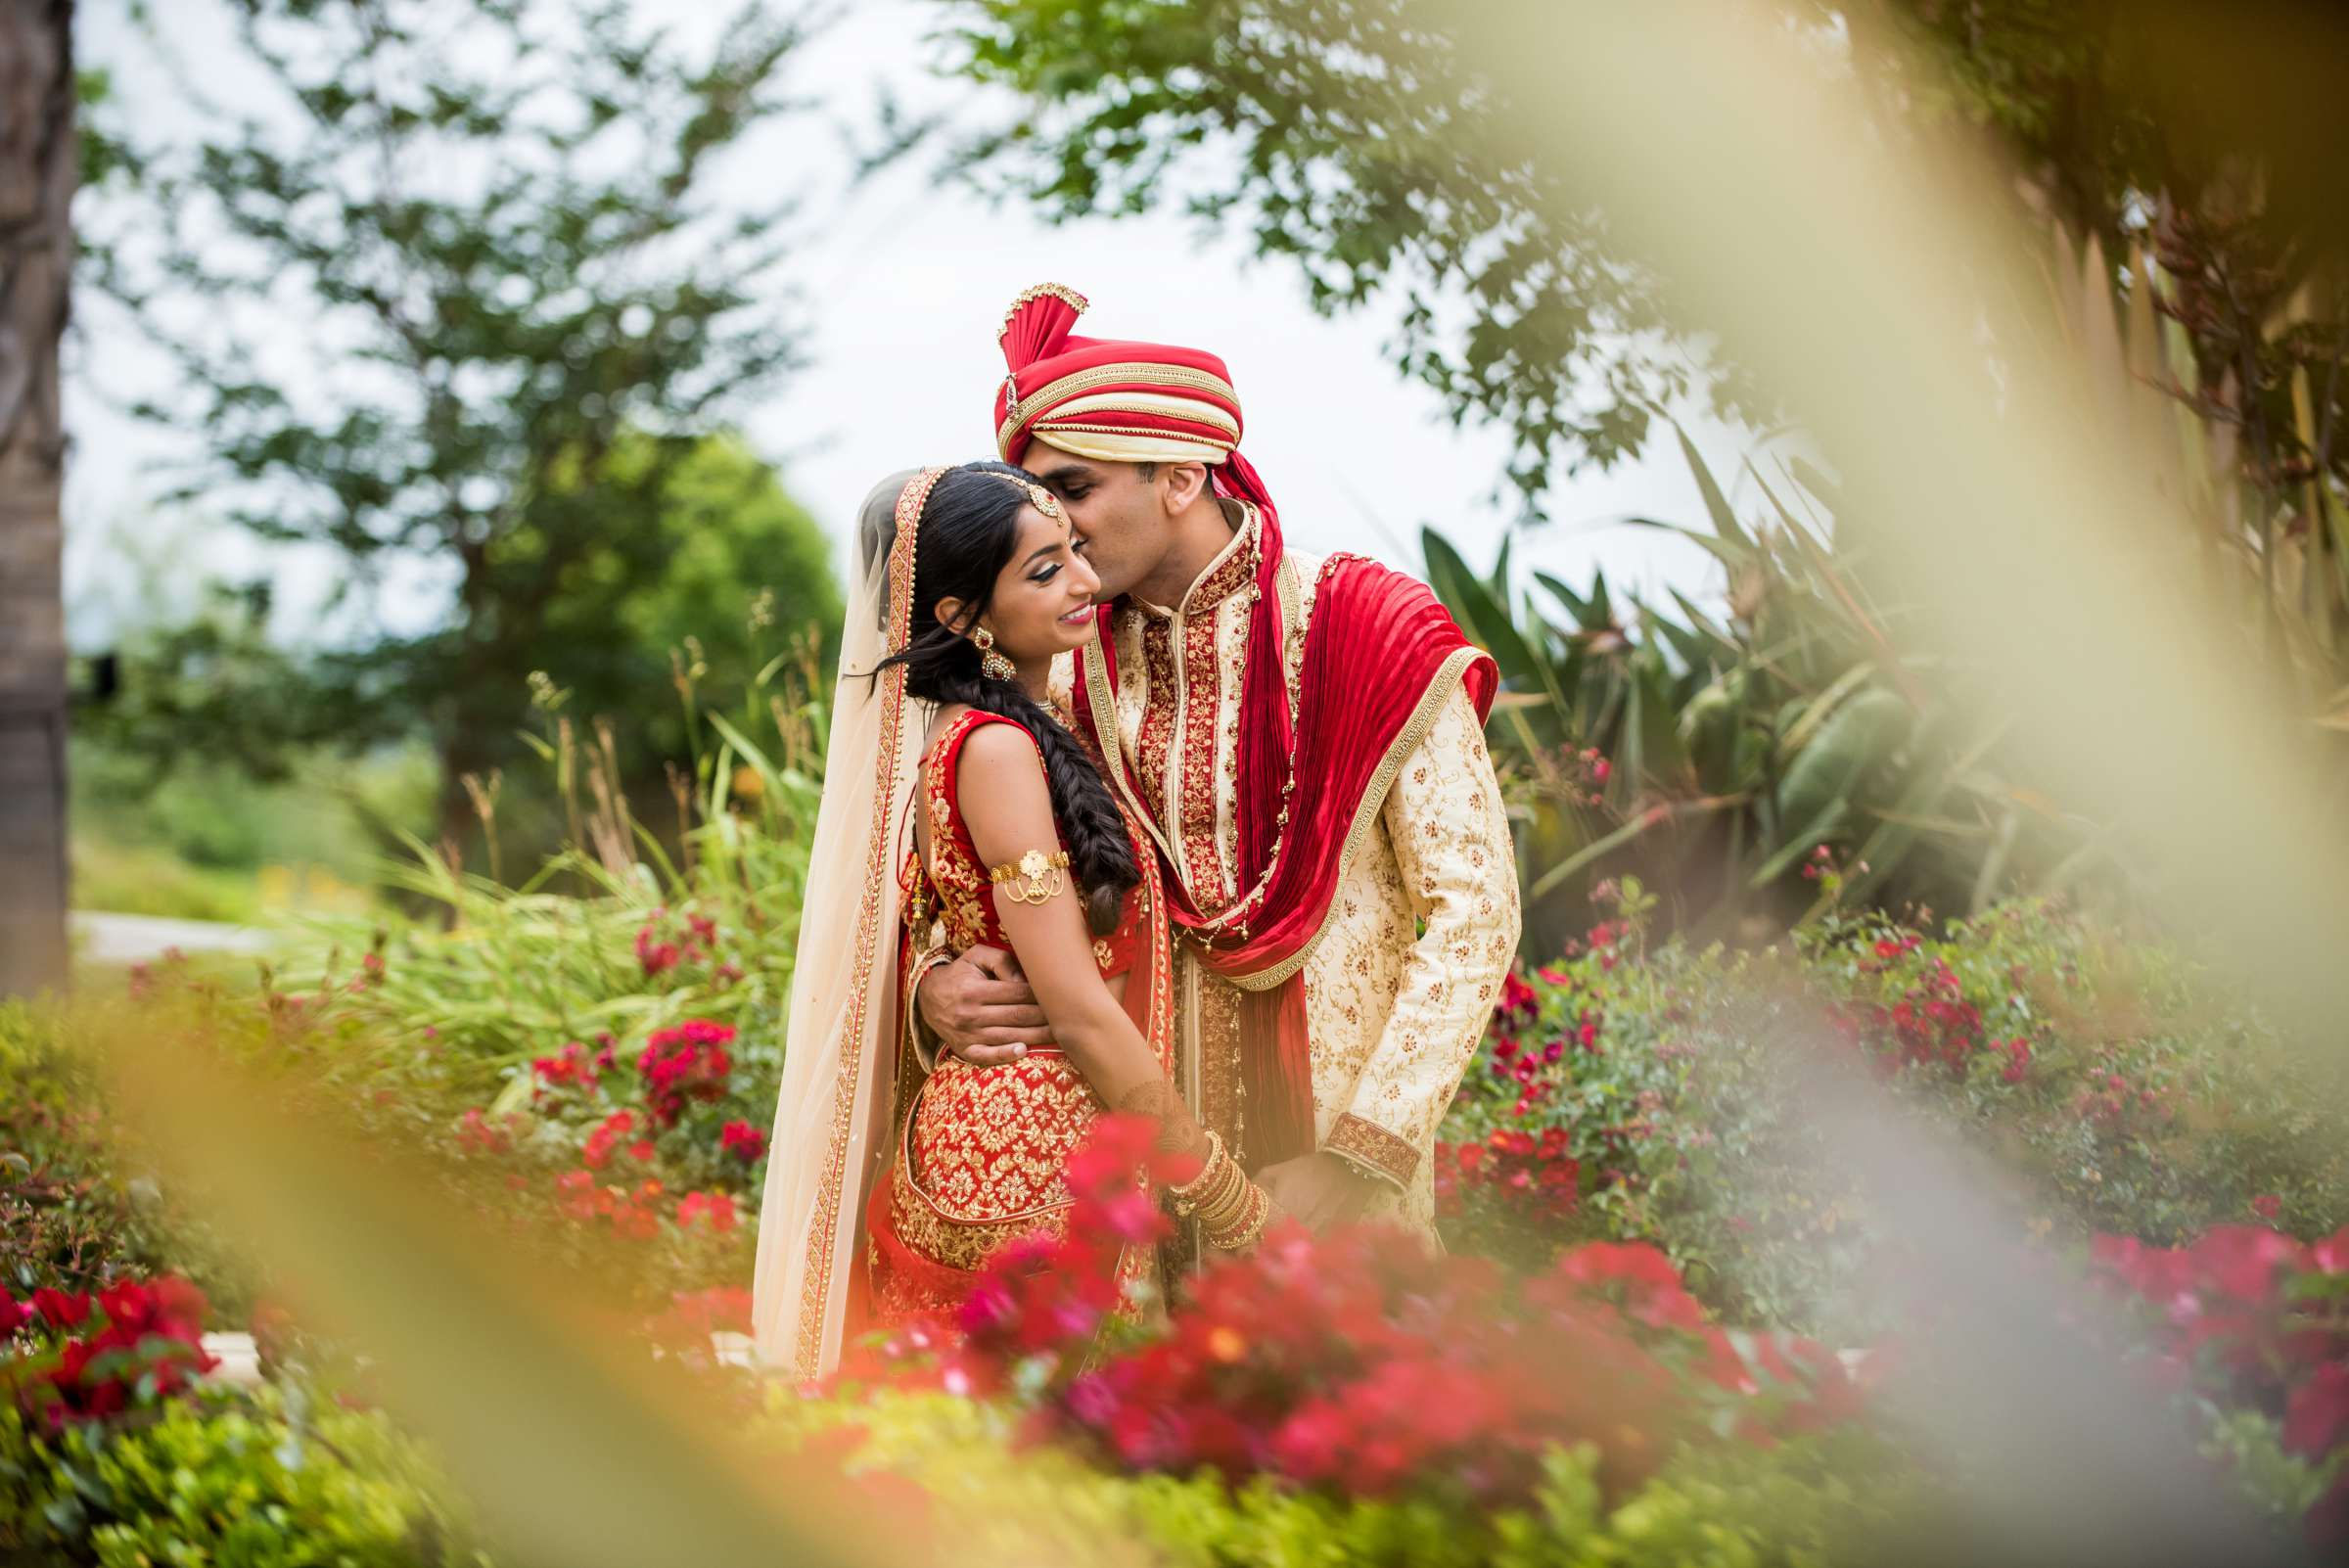 The Westin Carlsbad Resort and Spa Wedding coordinated by Shilpa Patel Events, Ami and Amit Wedding Photo #21 by True Photography